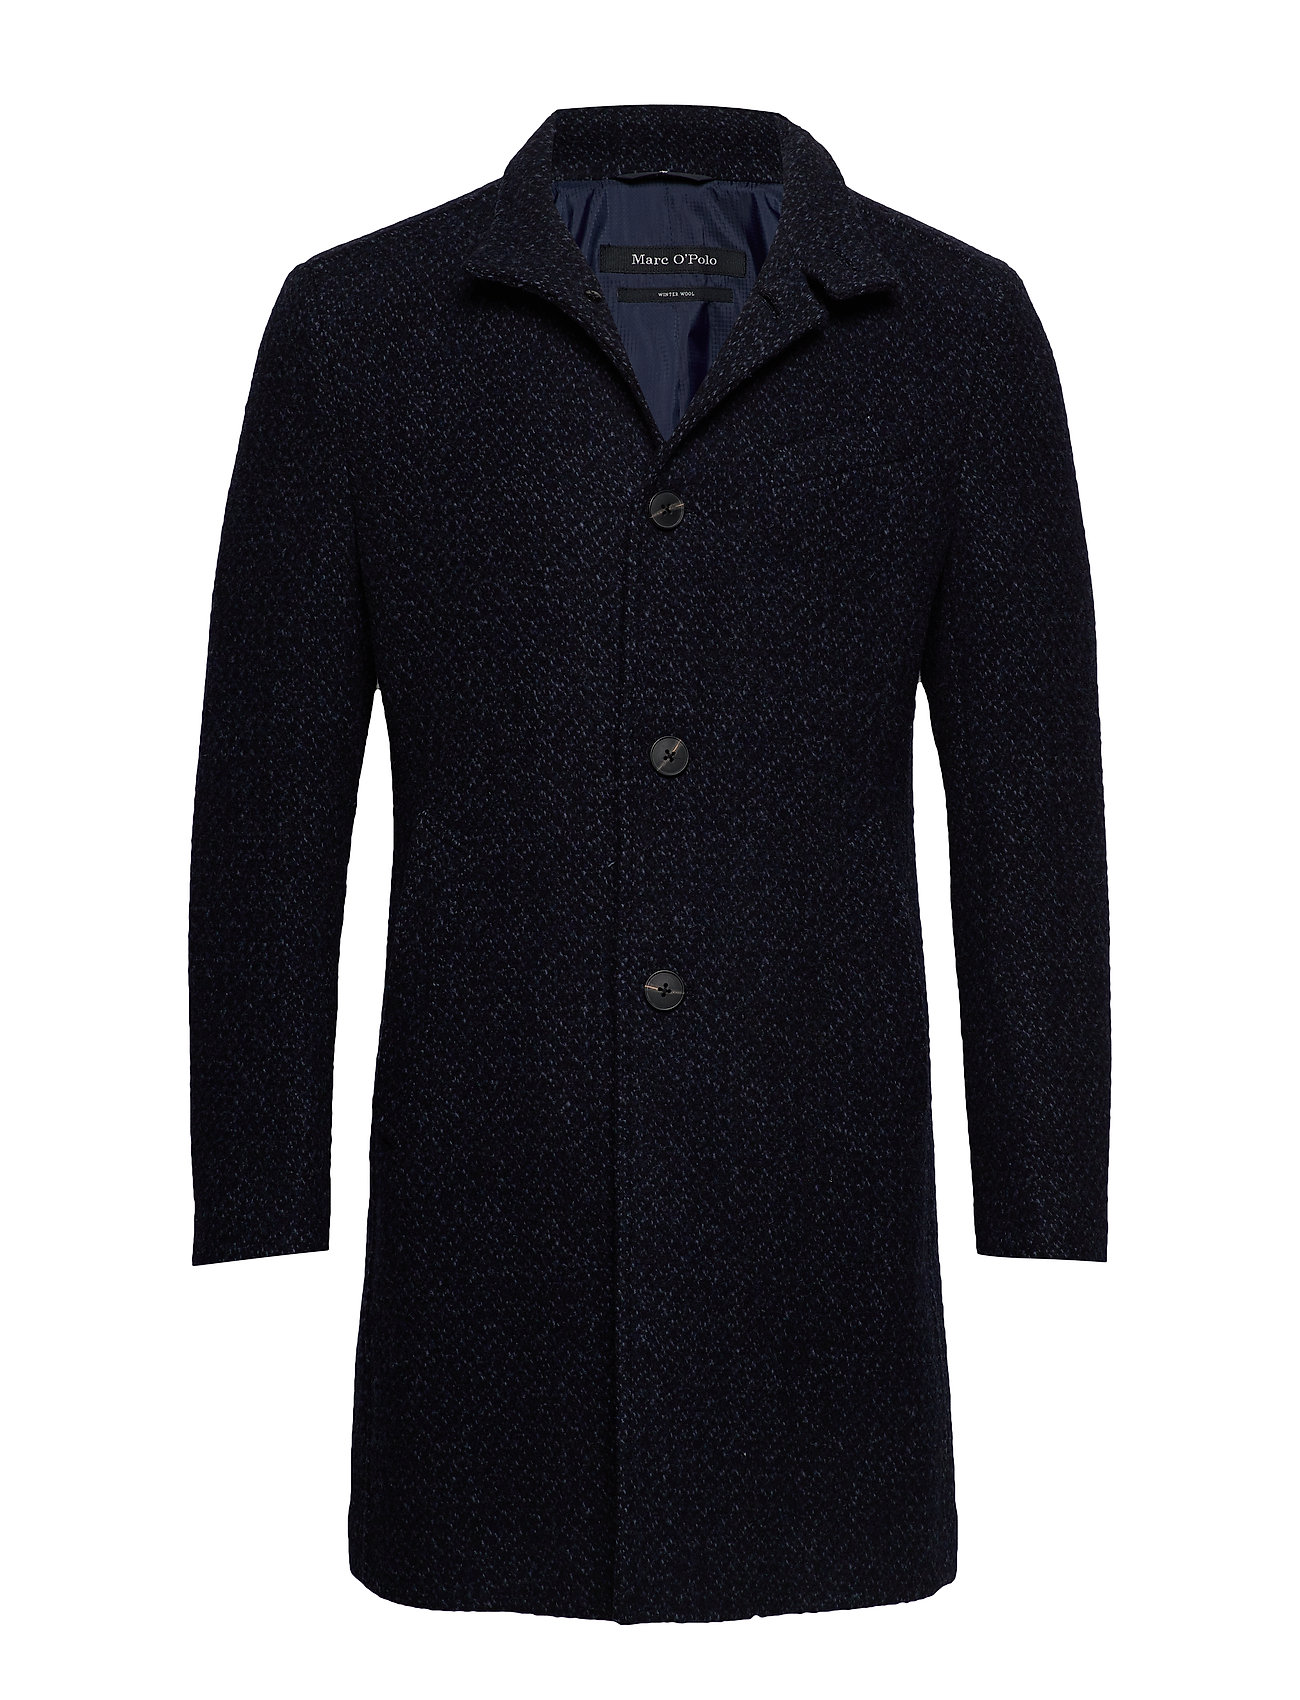 Marc O'Polo Coat, regular fit, long sleeve, sta - TOTAL ECLIPSE